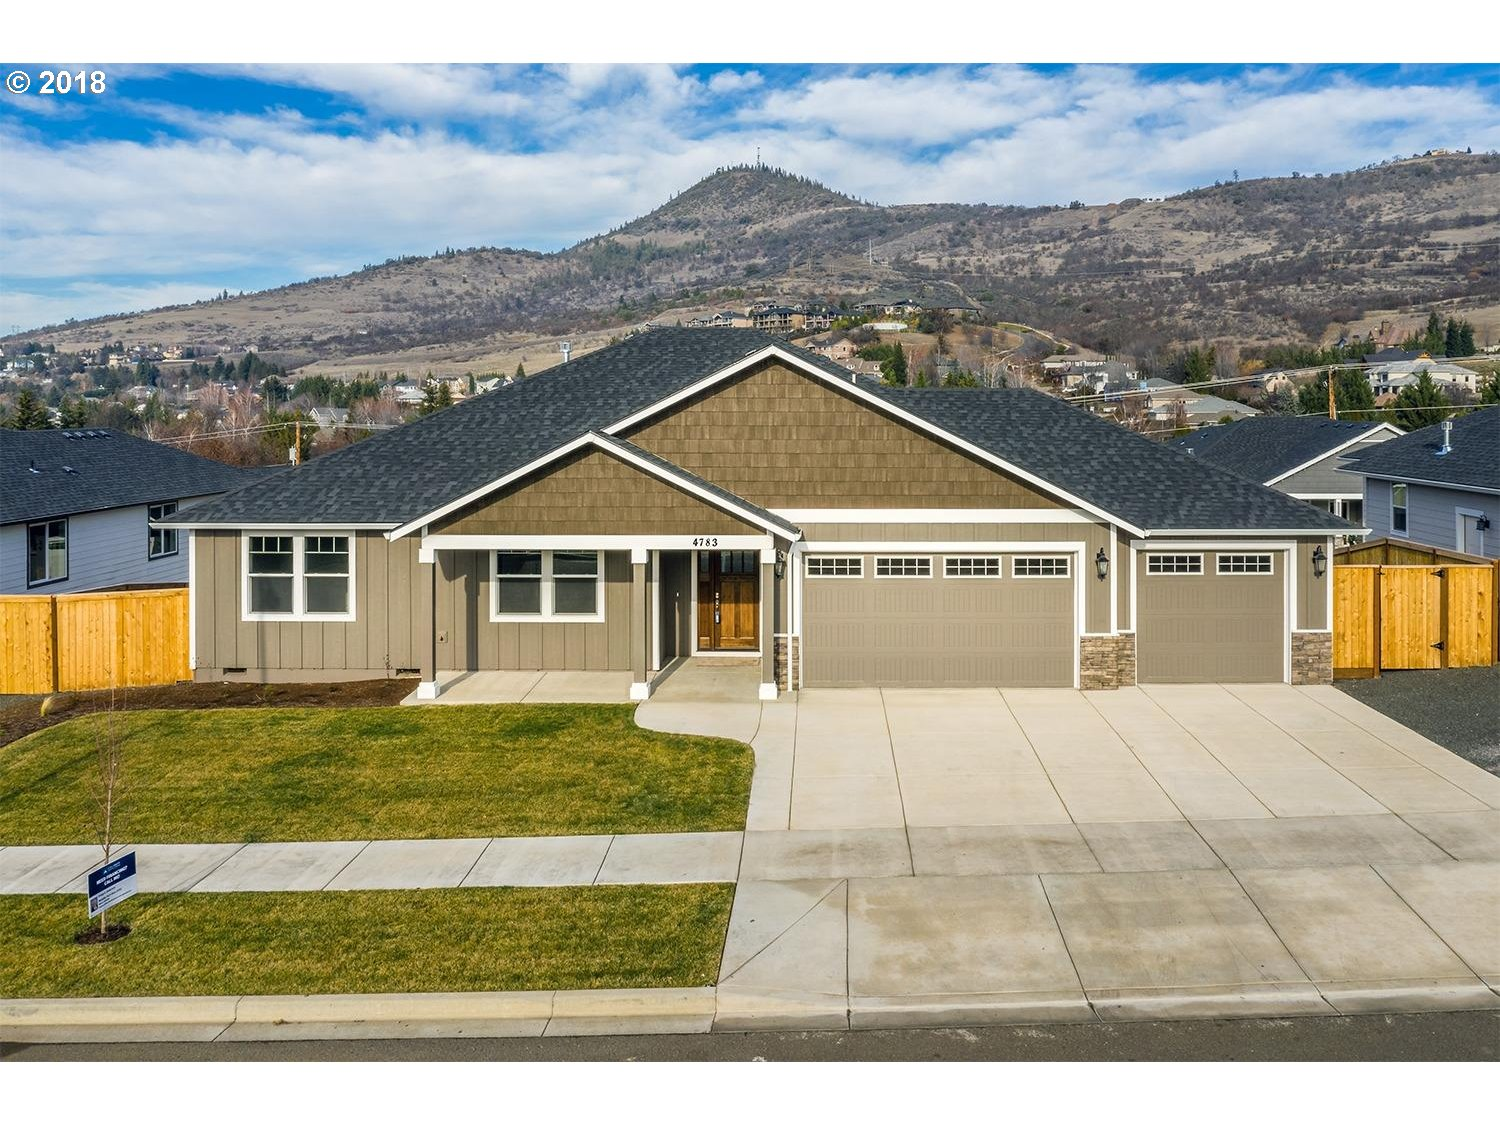 Medford, OR 4 Bedroom Home For Sale